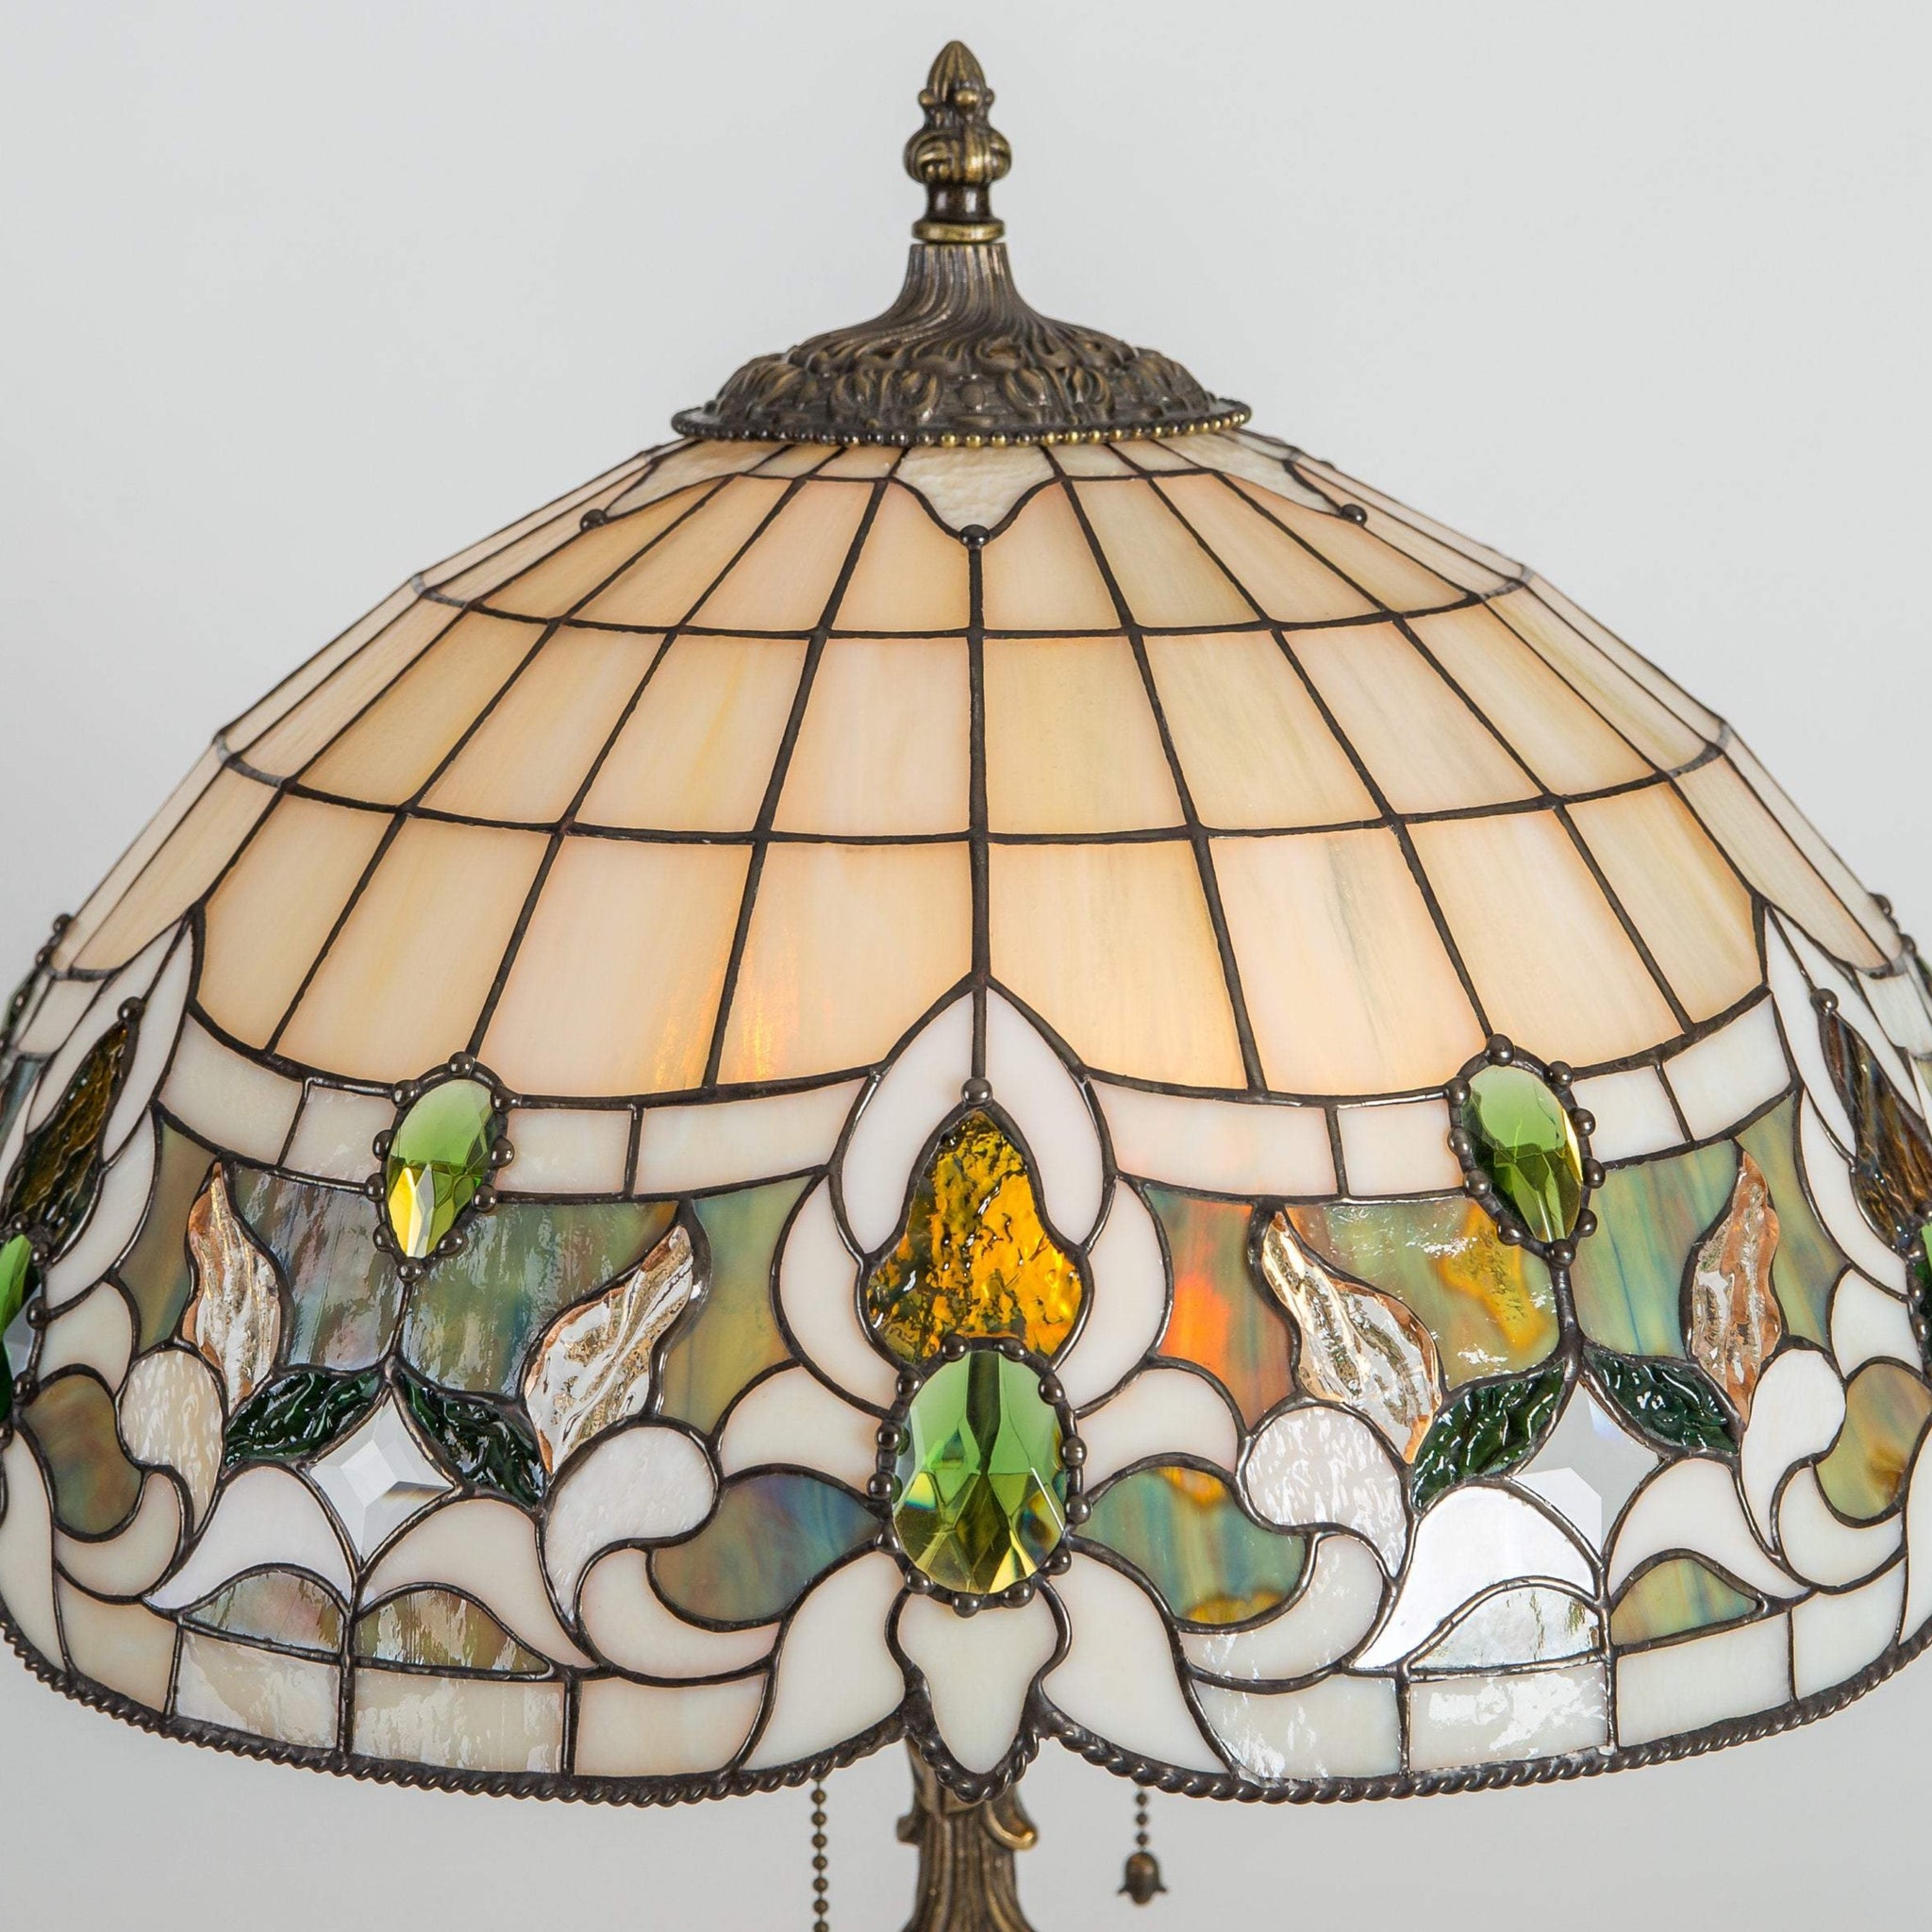 Stained Glass Tiffany Lamp With Green Inserts For Home Decor